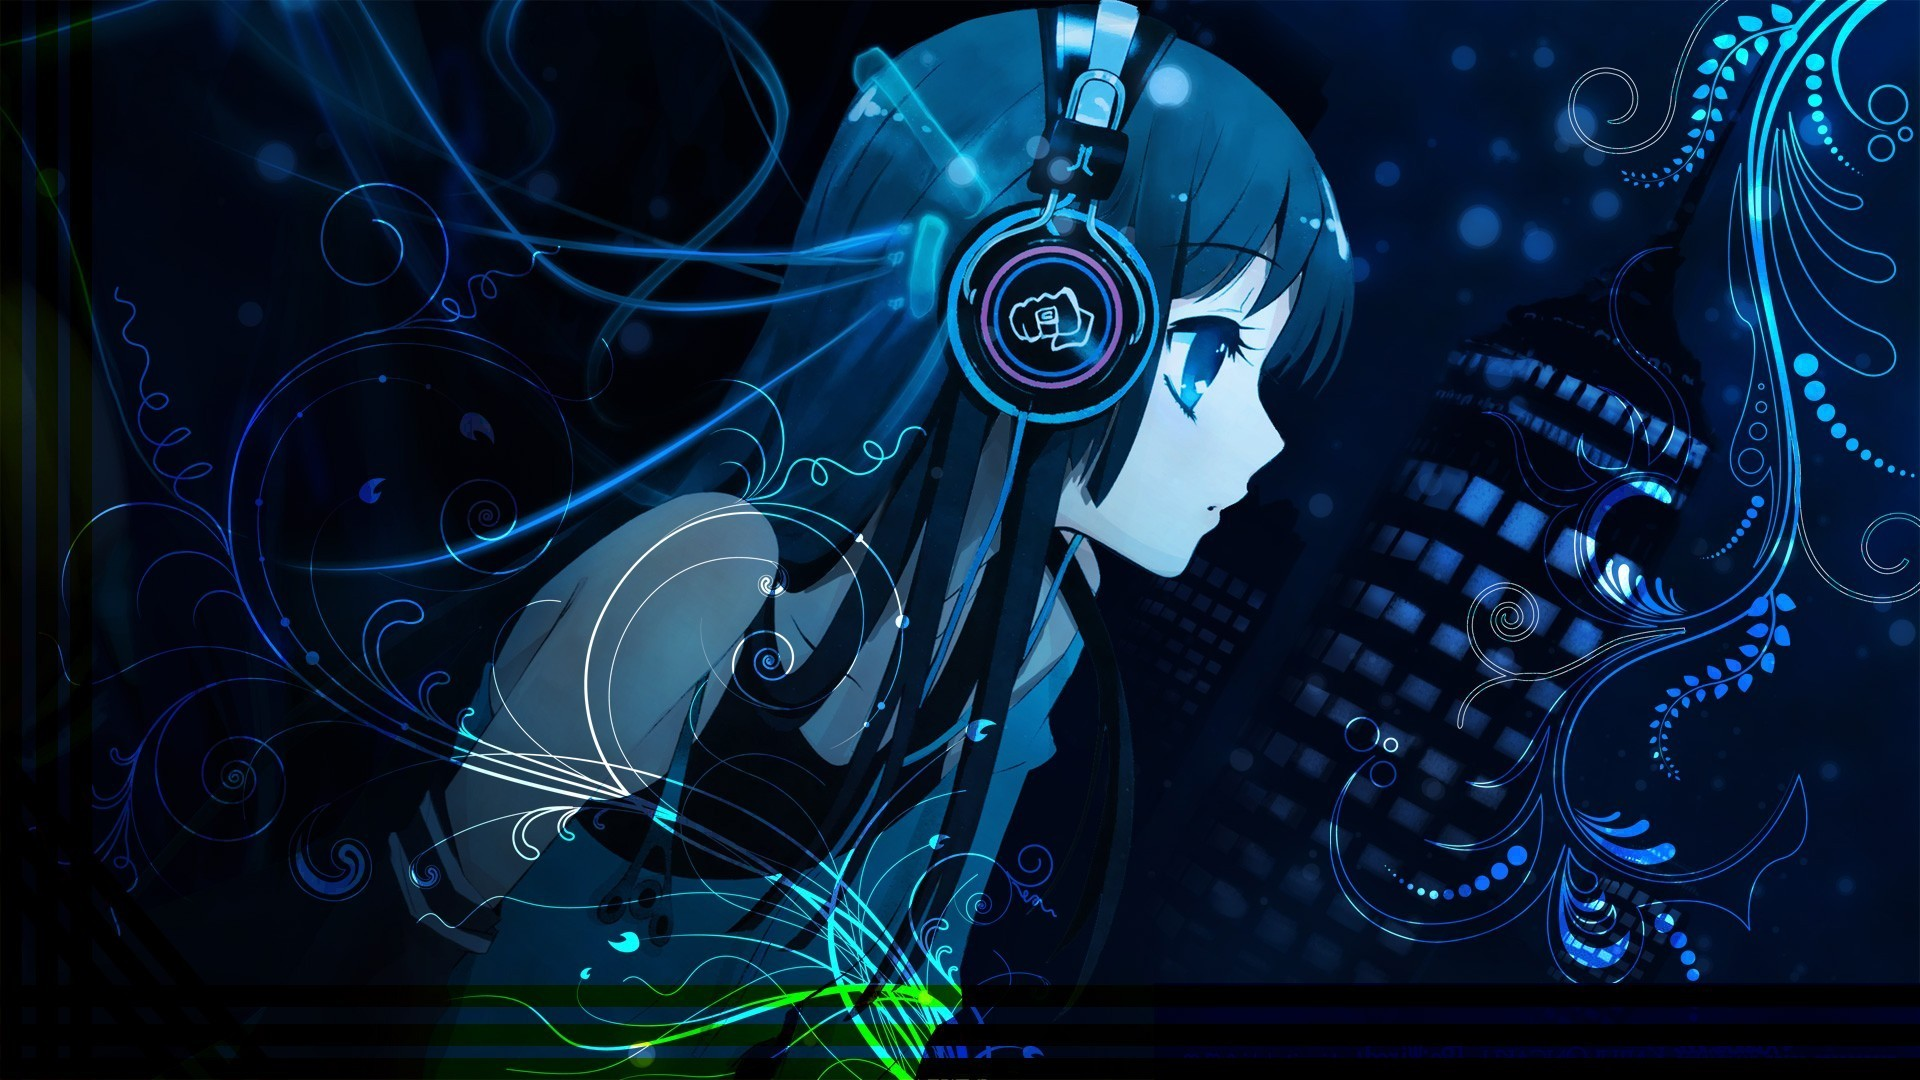 10 Best Anime Music Wallpaper 1920x1080 Full Hd 1920 1080: Anime Gamer Girl Wallpapers (68+ Images